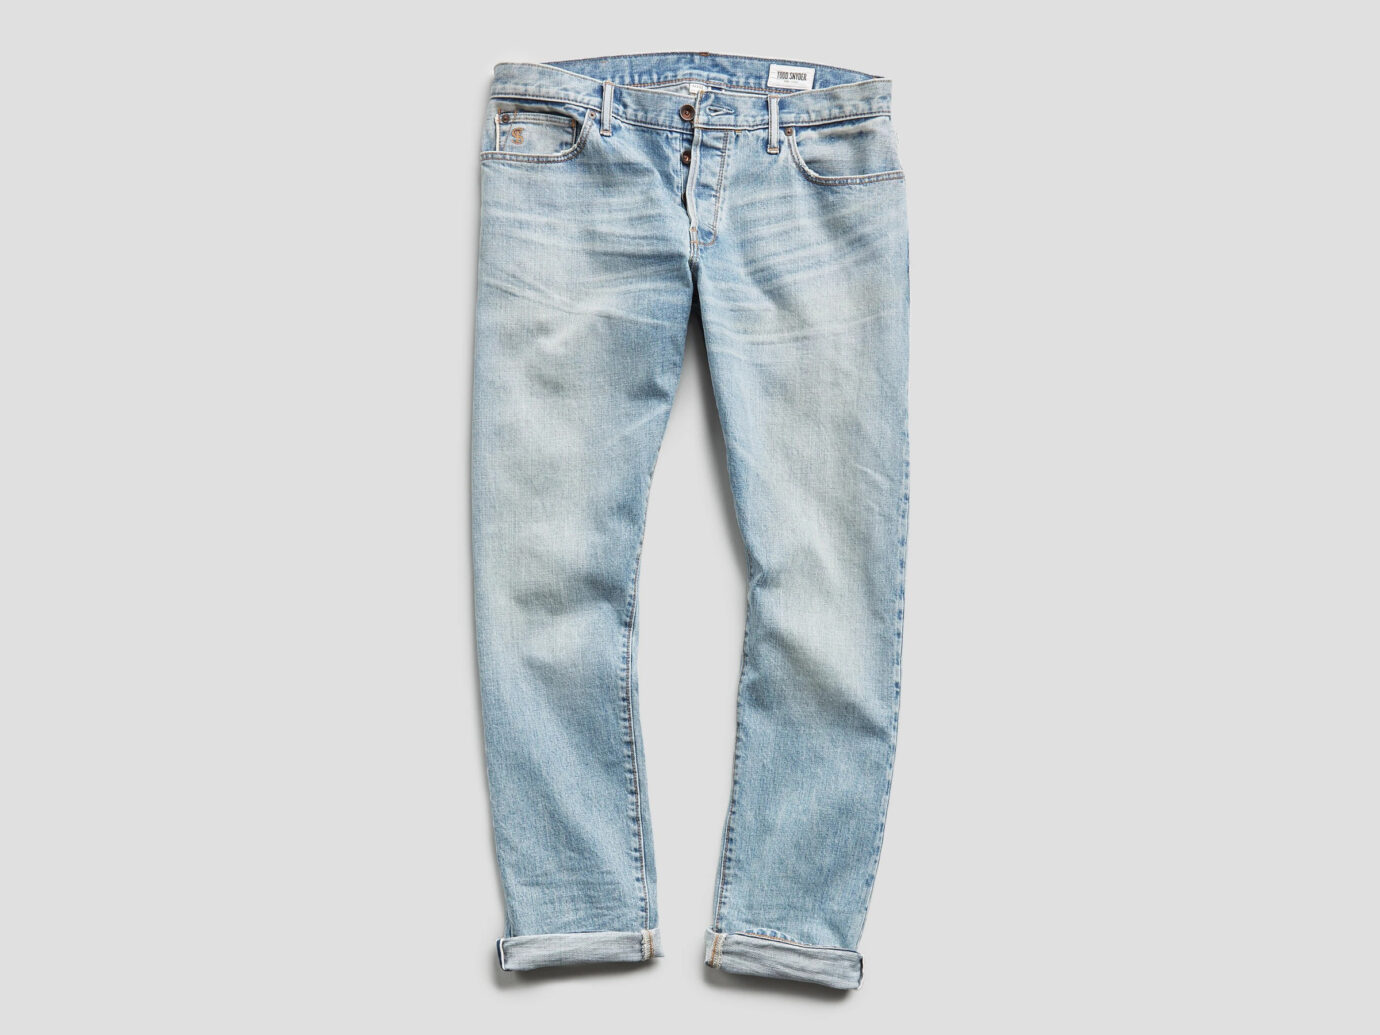 Todd Snyder Slim Fit Japanese Selvage Jeans